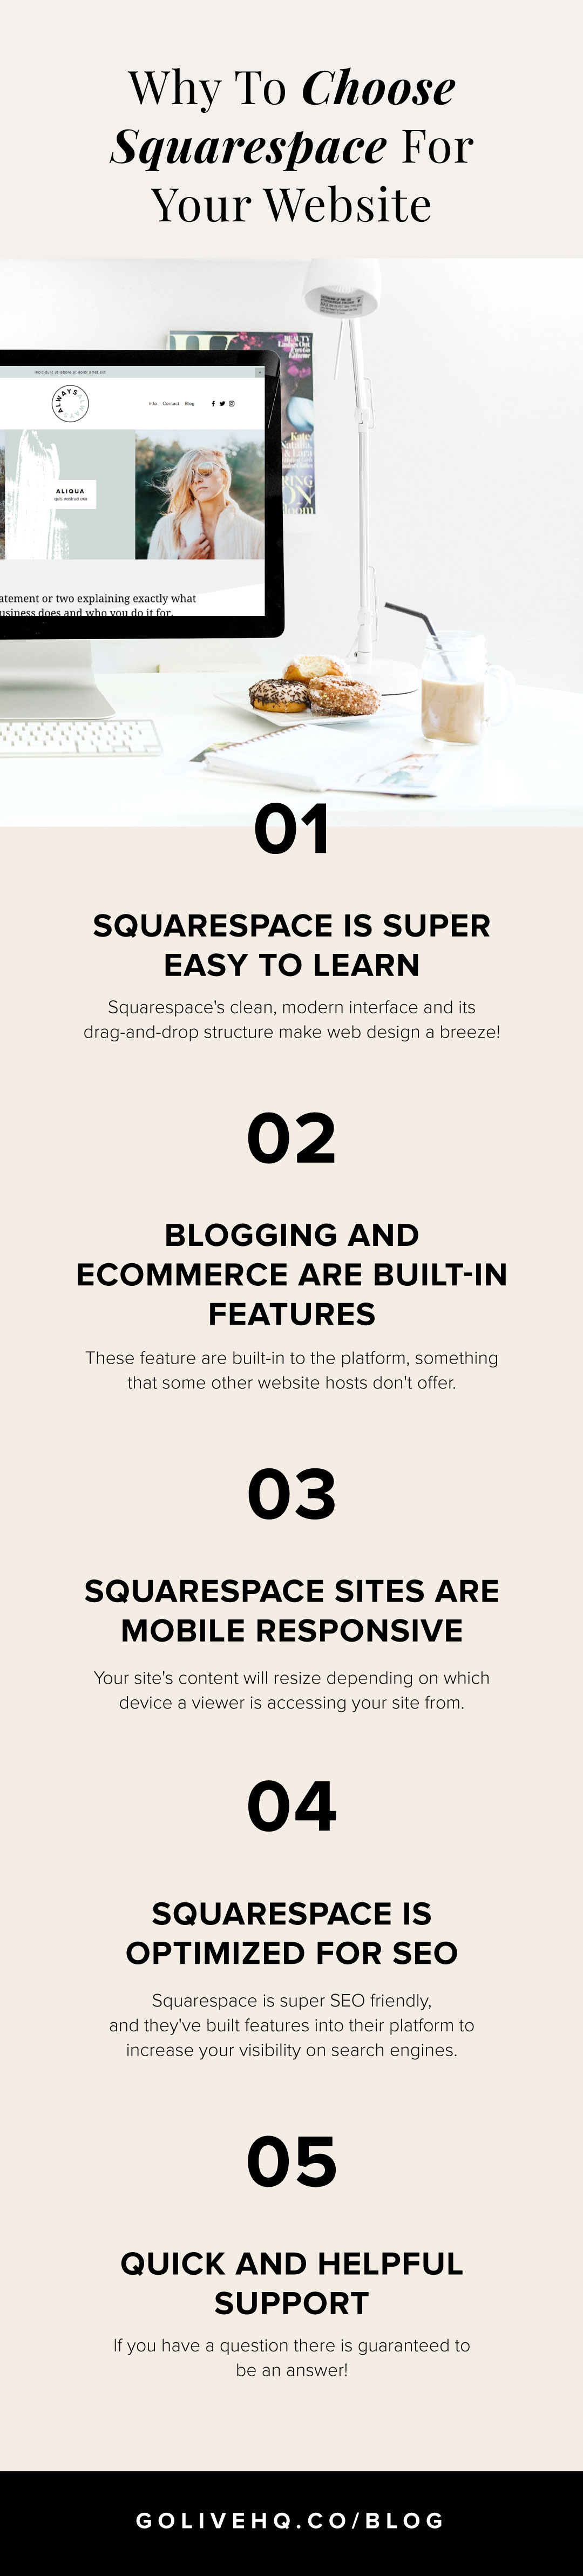 Why To Choose Squarespace For Your Website | Go Live HQ